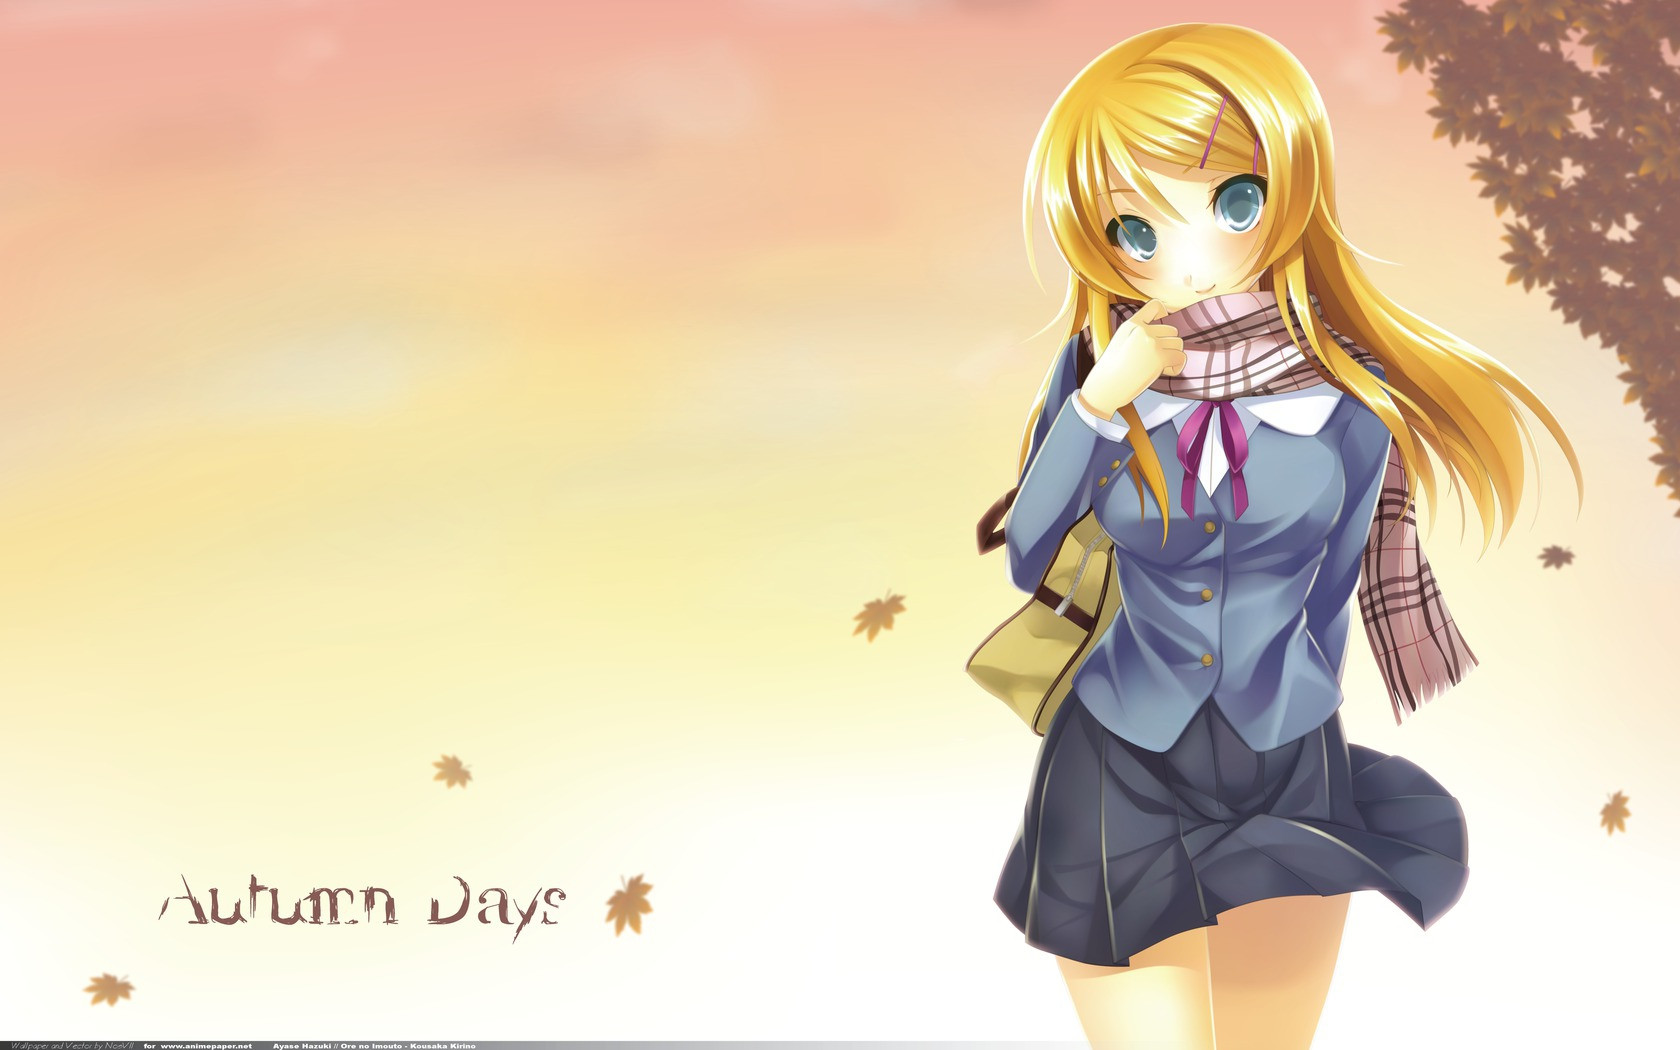 Hd Sweet Girl Wallpaper Anime Kawaii Wallpapers Pixelstalk Net